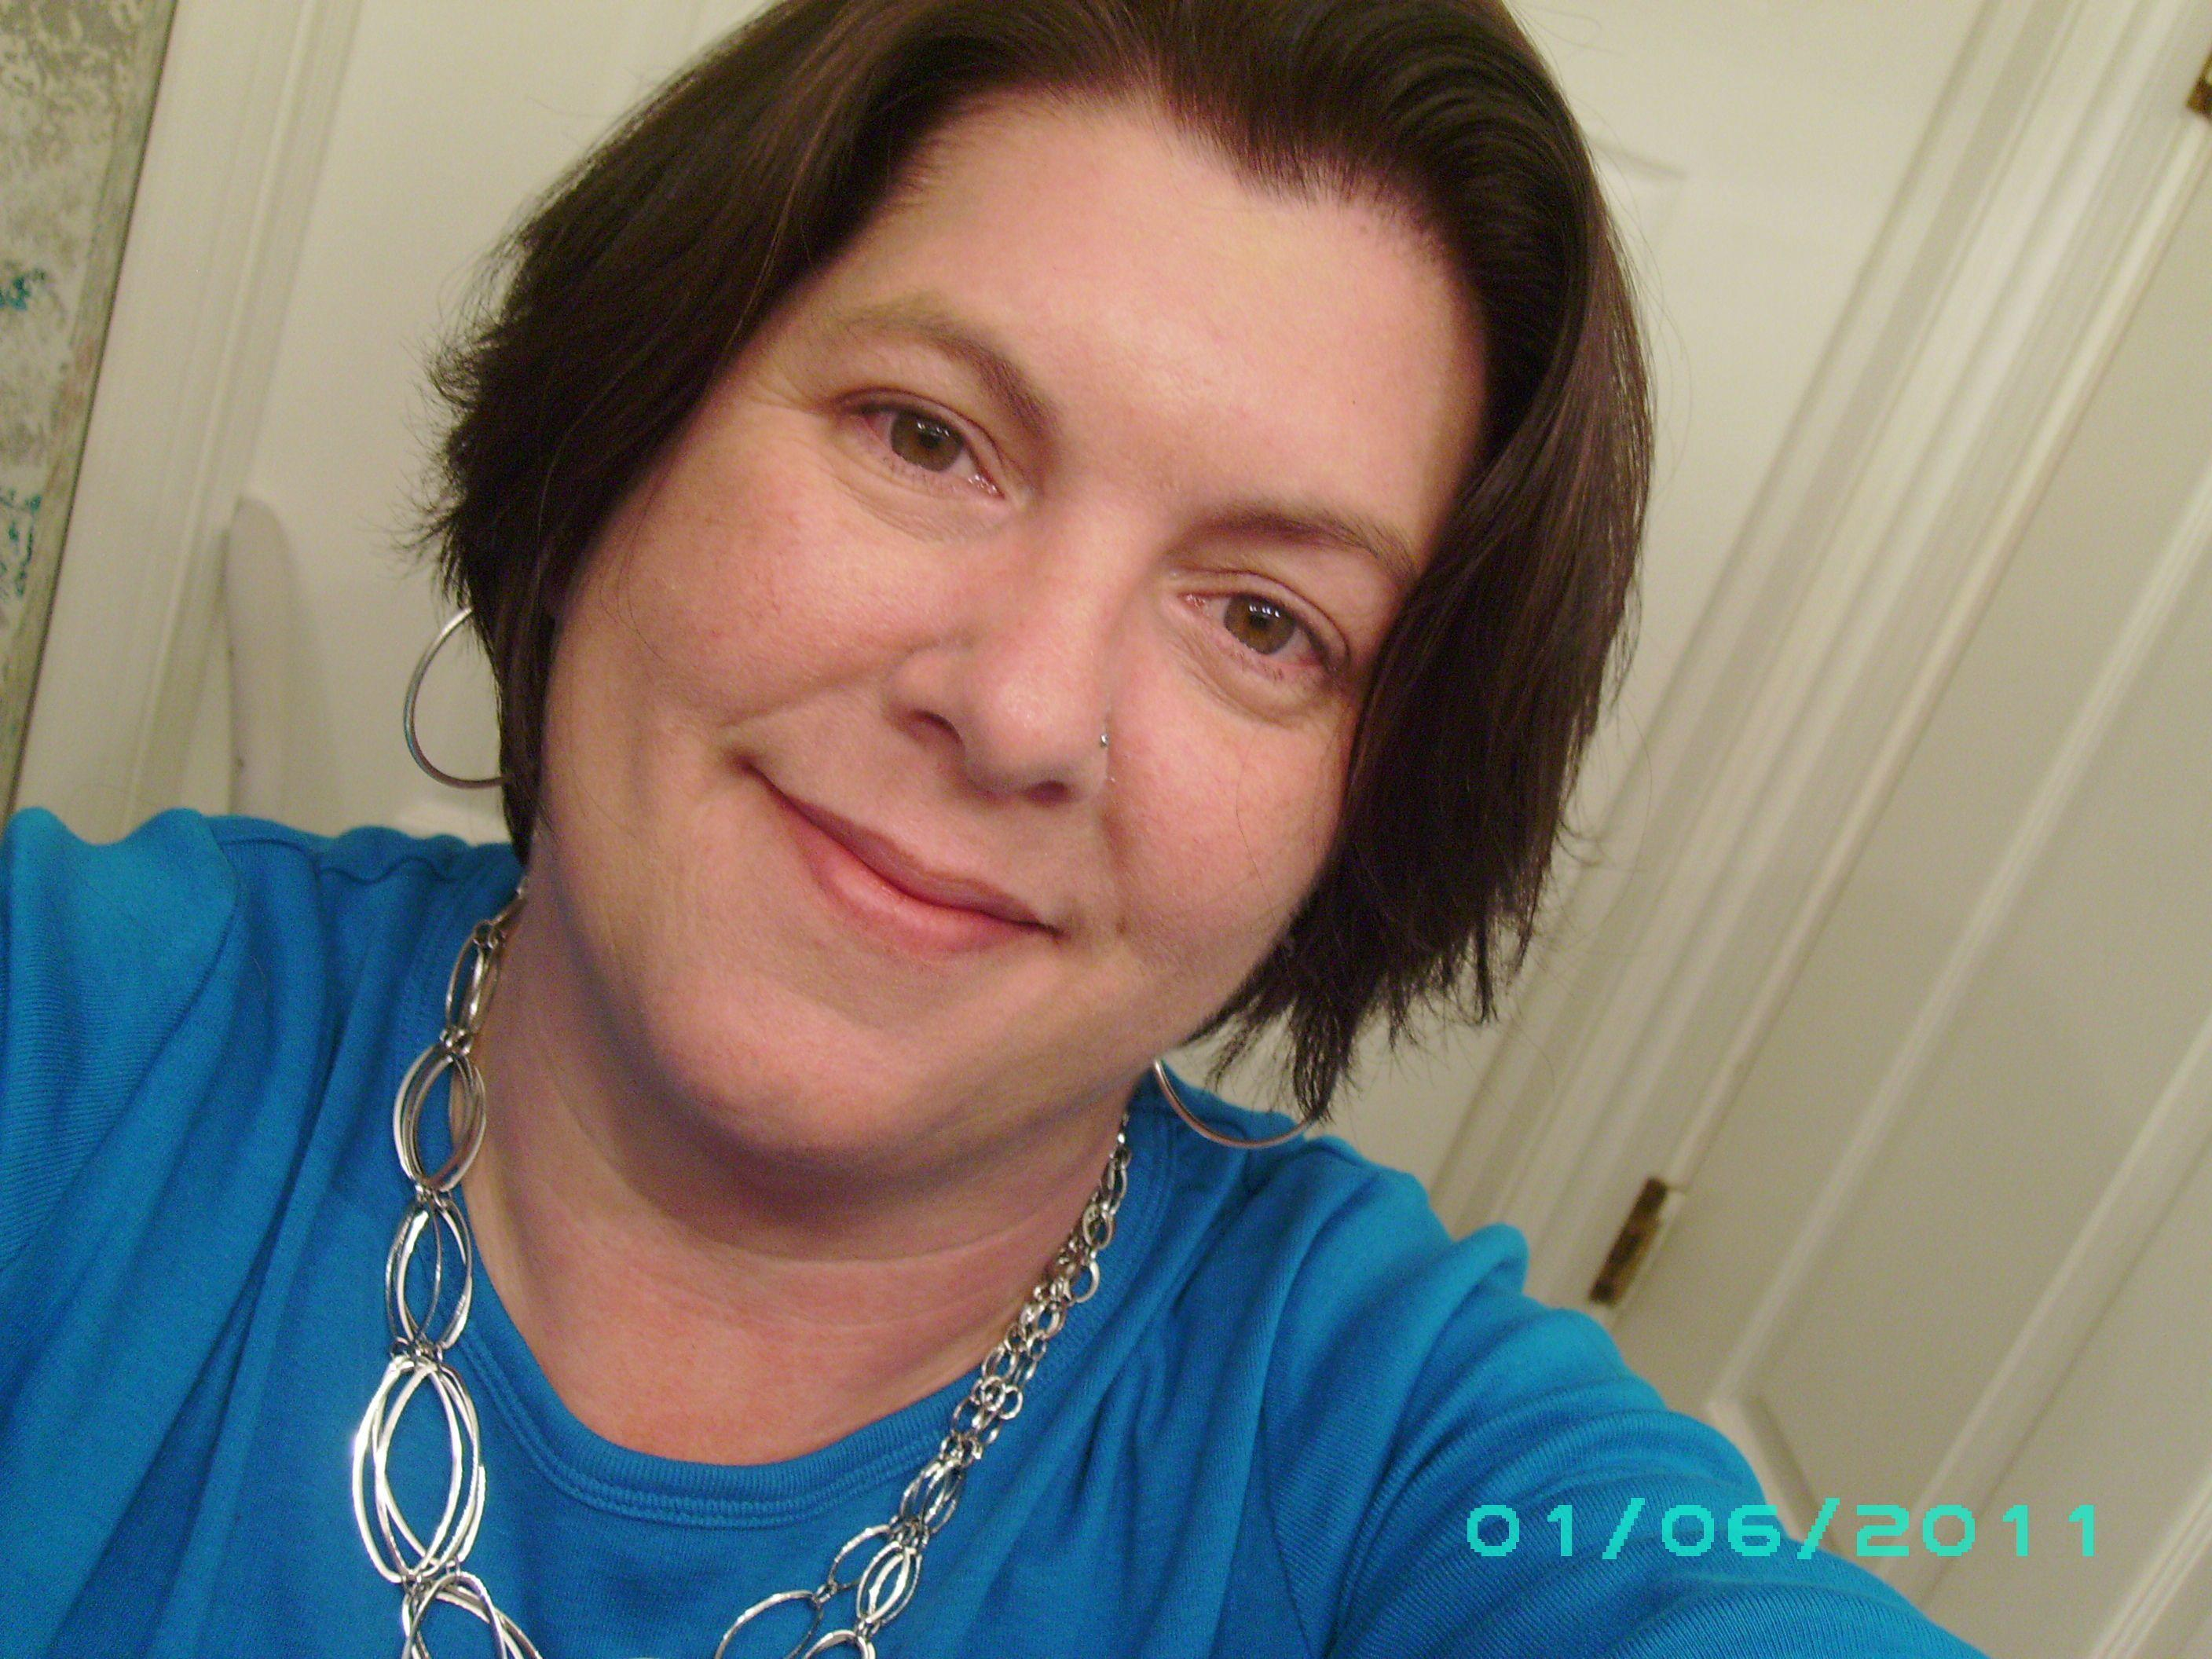 meet oak brook singles Meet judith barath of judith barath arts in oak brook local stories share tweet pin  local galleries and solo shows around my oak brook home lately, i focus more on my website and.